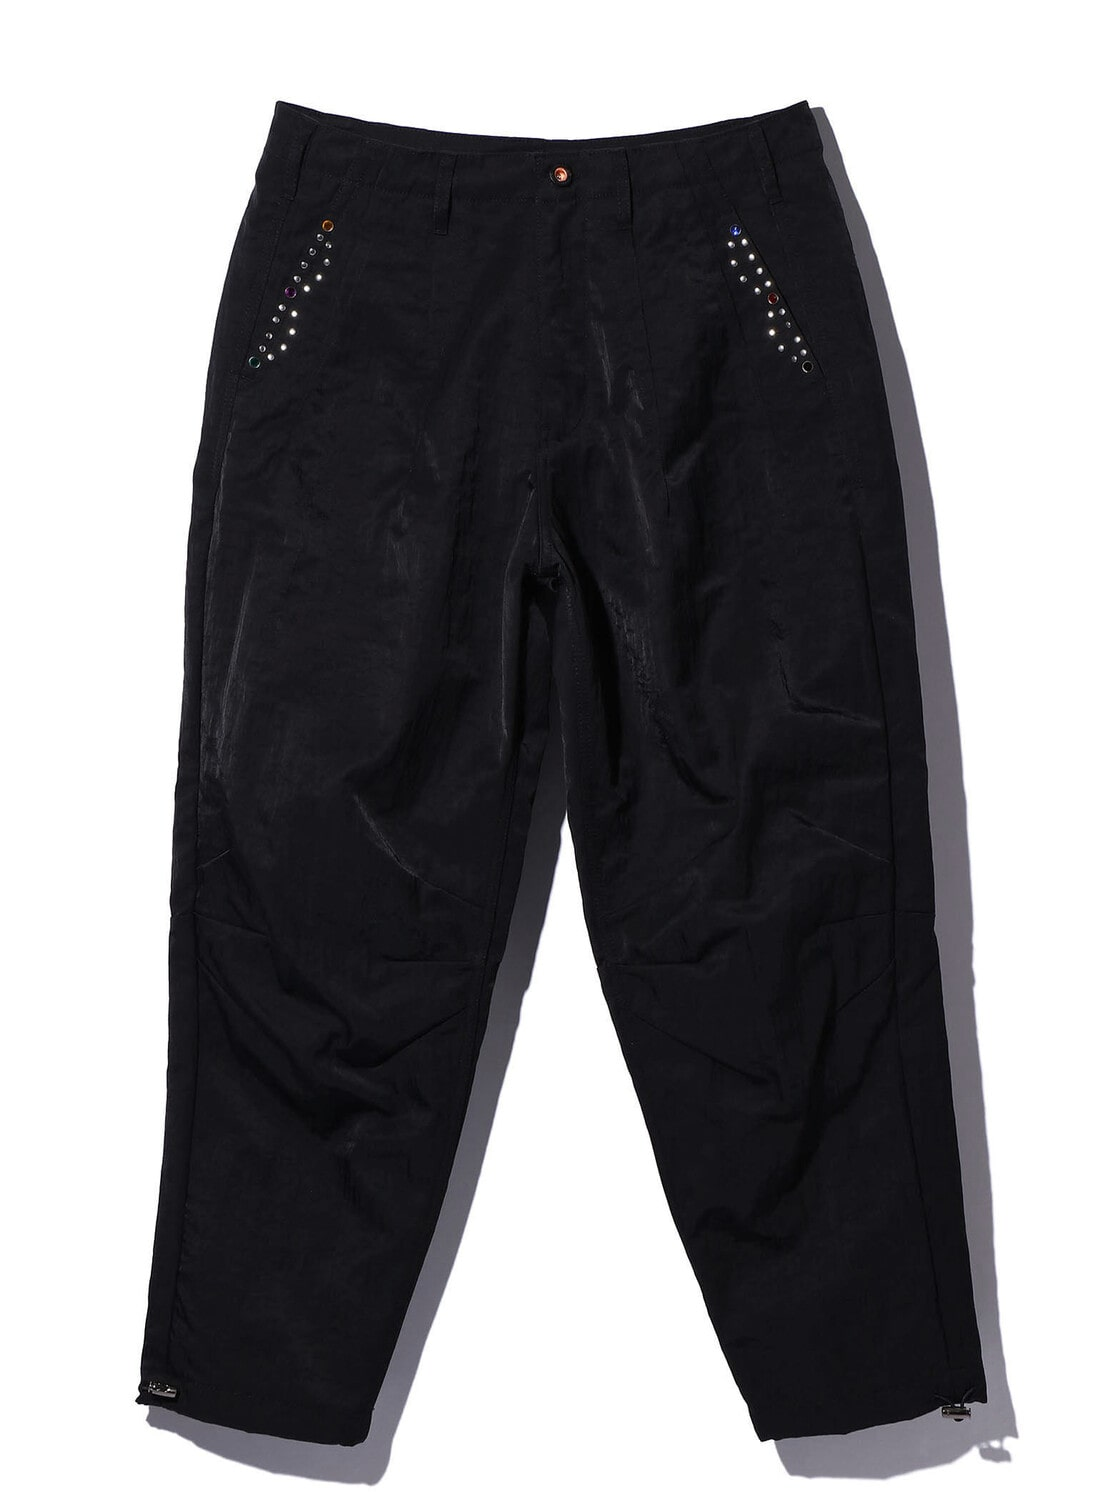 【日本限定】BALLOON PANTS